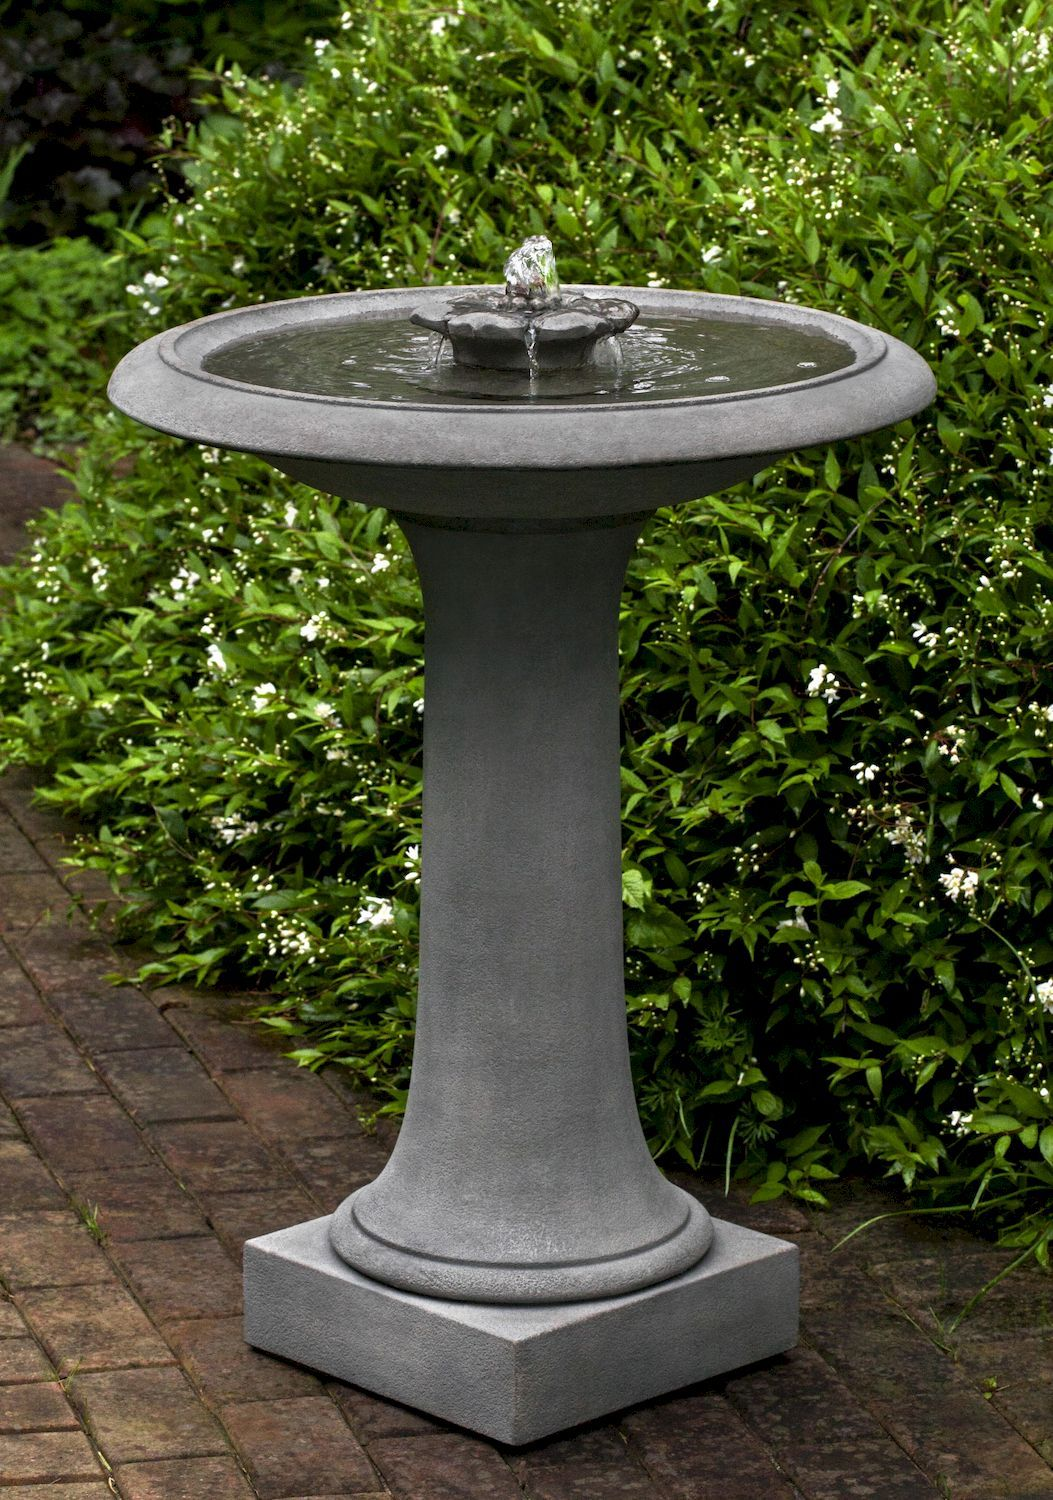 large outdoor water fountains for sale on spectacular space saving outdoor water fountains decoration bird bath fountain fountains outdoor water fountains outdoor bird bath fountain fountains outdoor